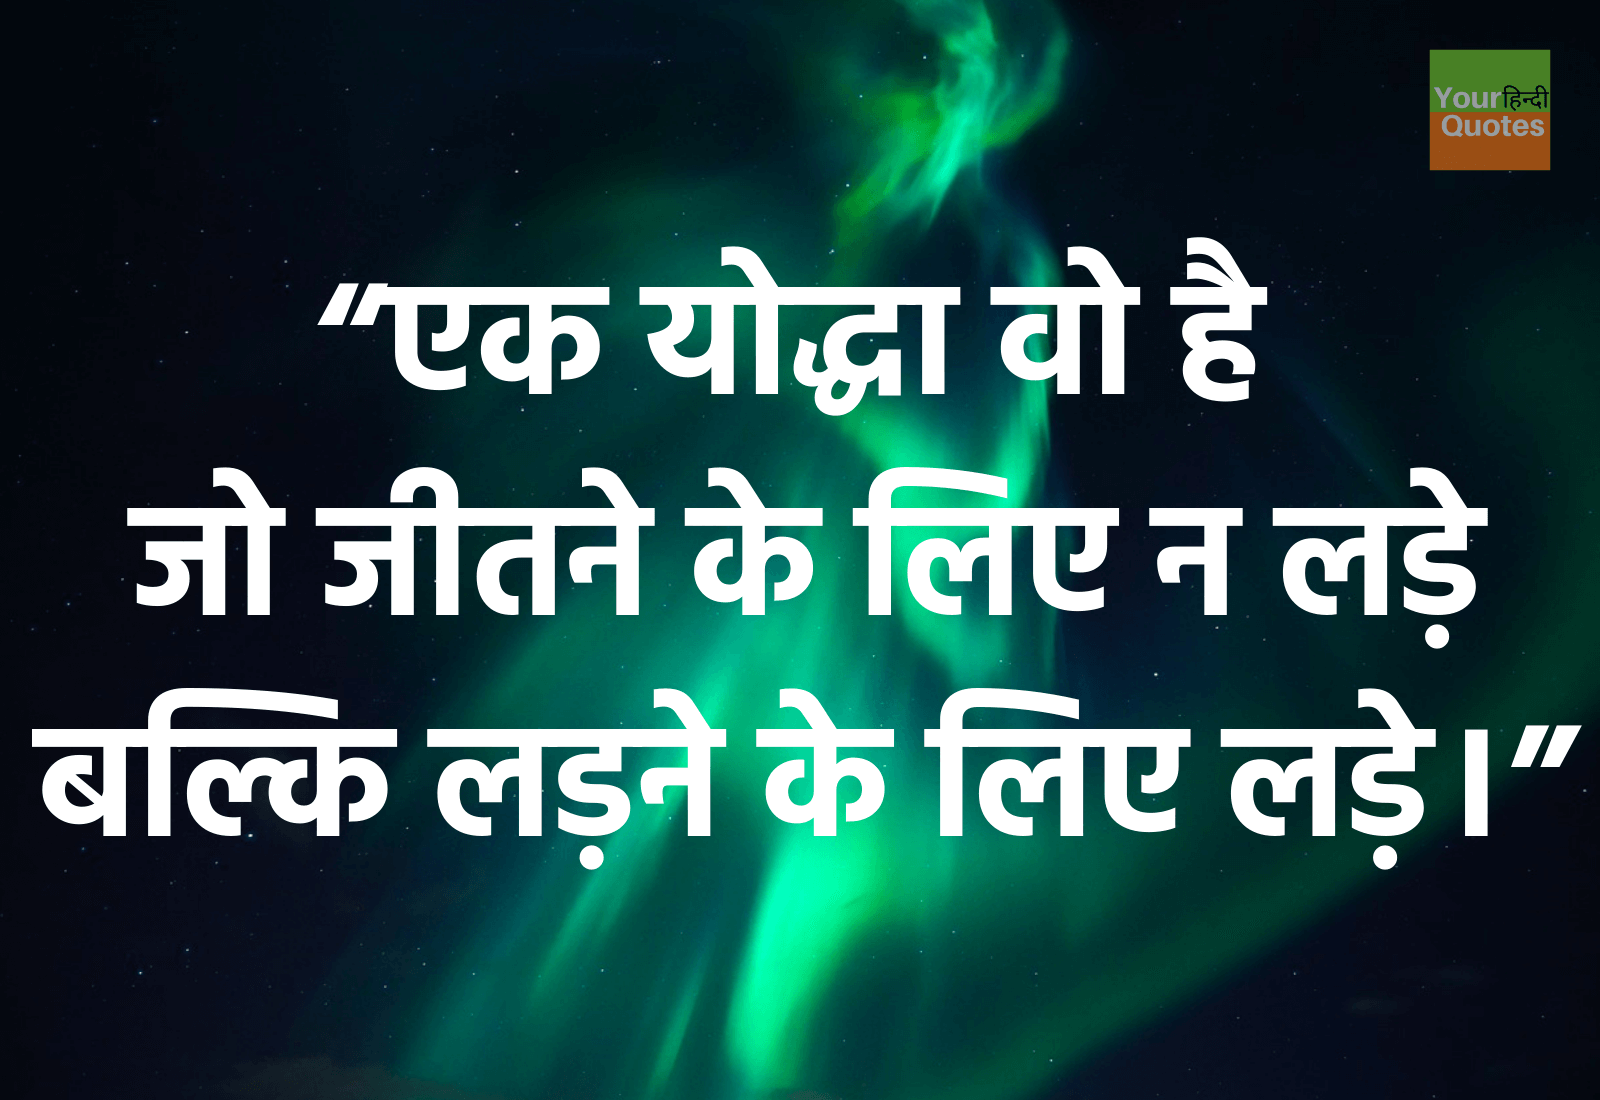 Motivational Quotes Hindi Images6